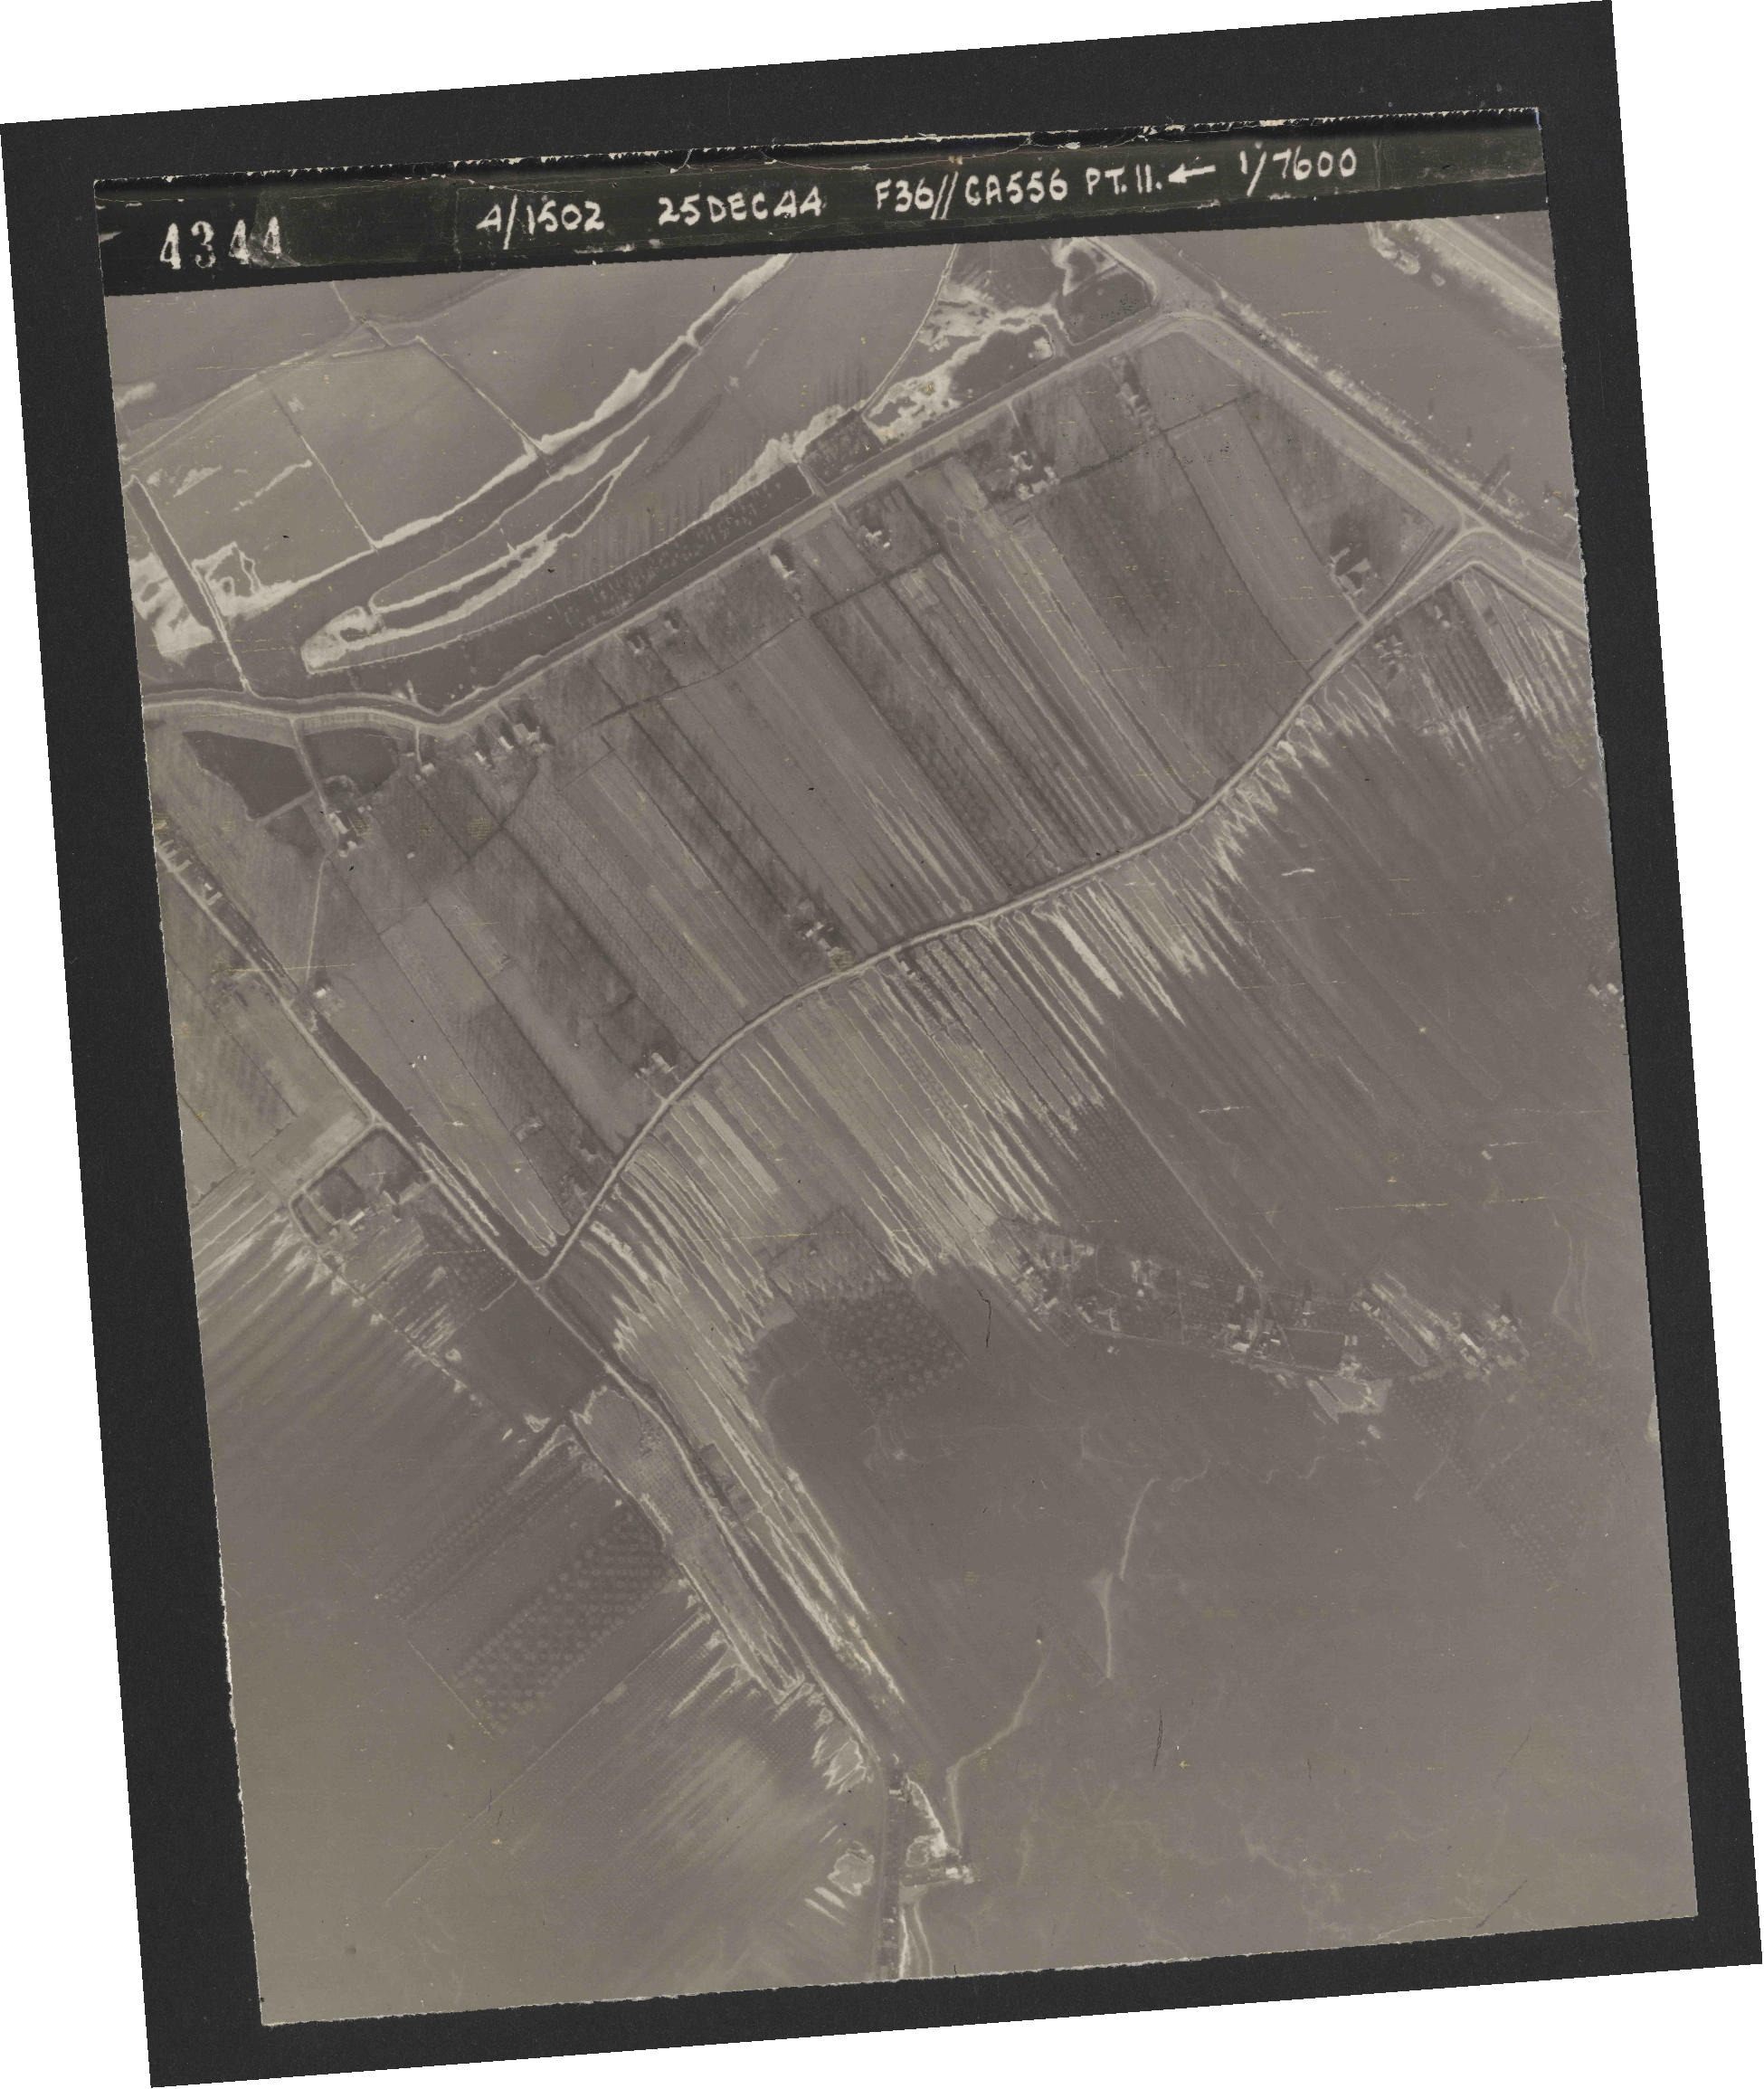 Collection RAF aerial photos 1940-1945 - flight 306, run 11, photo 4344